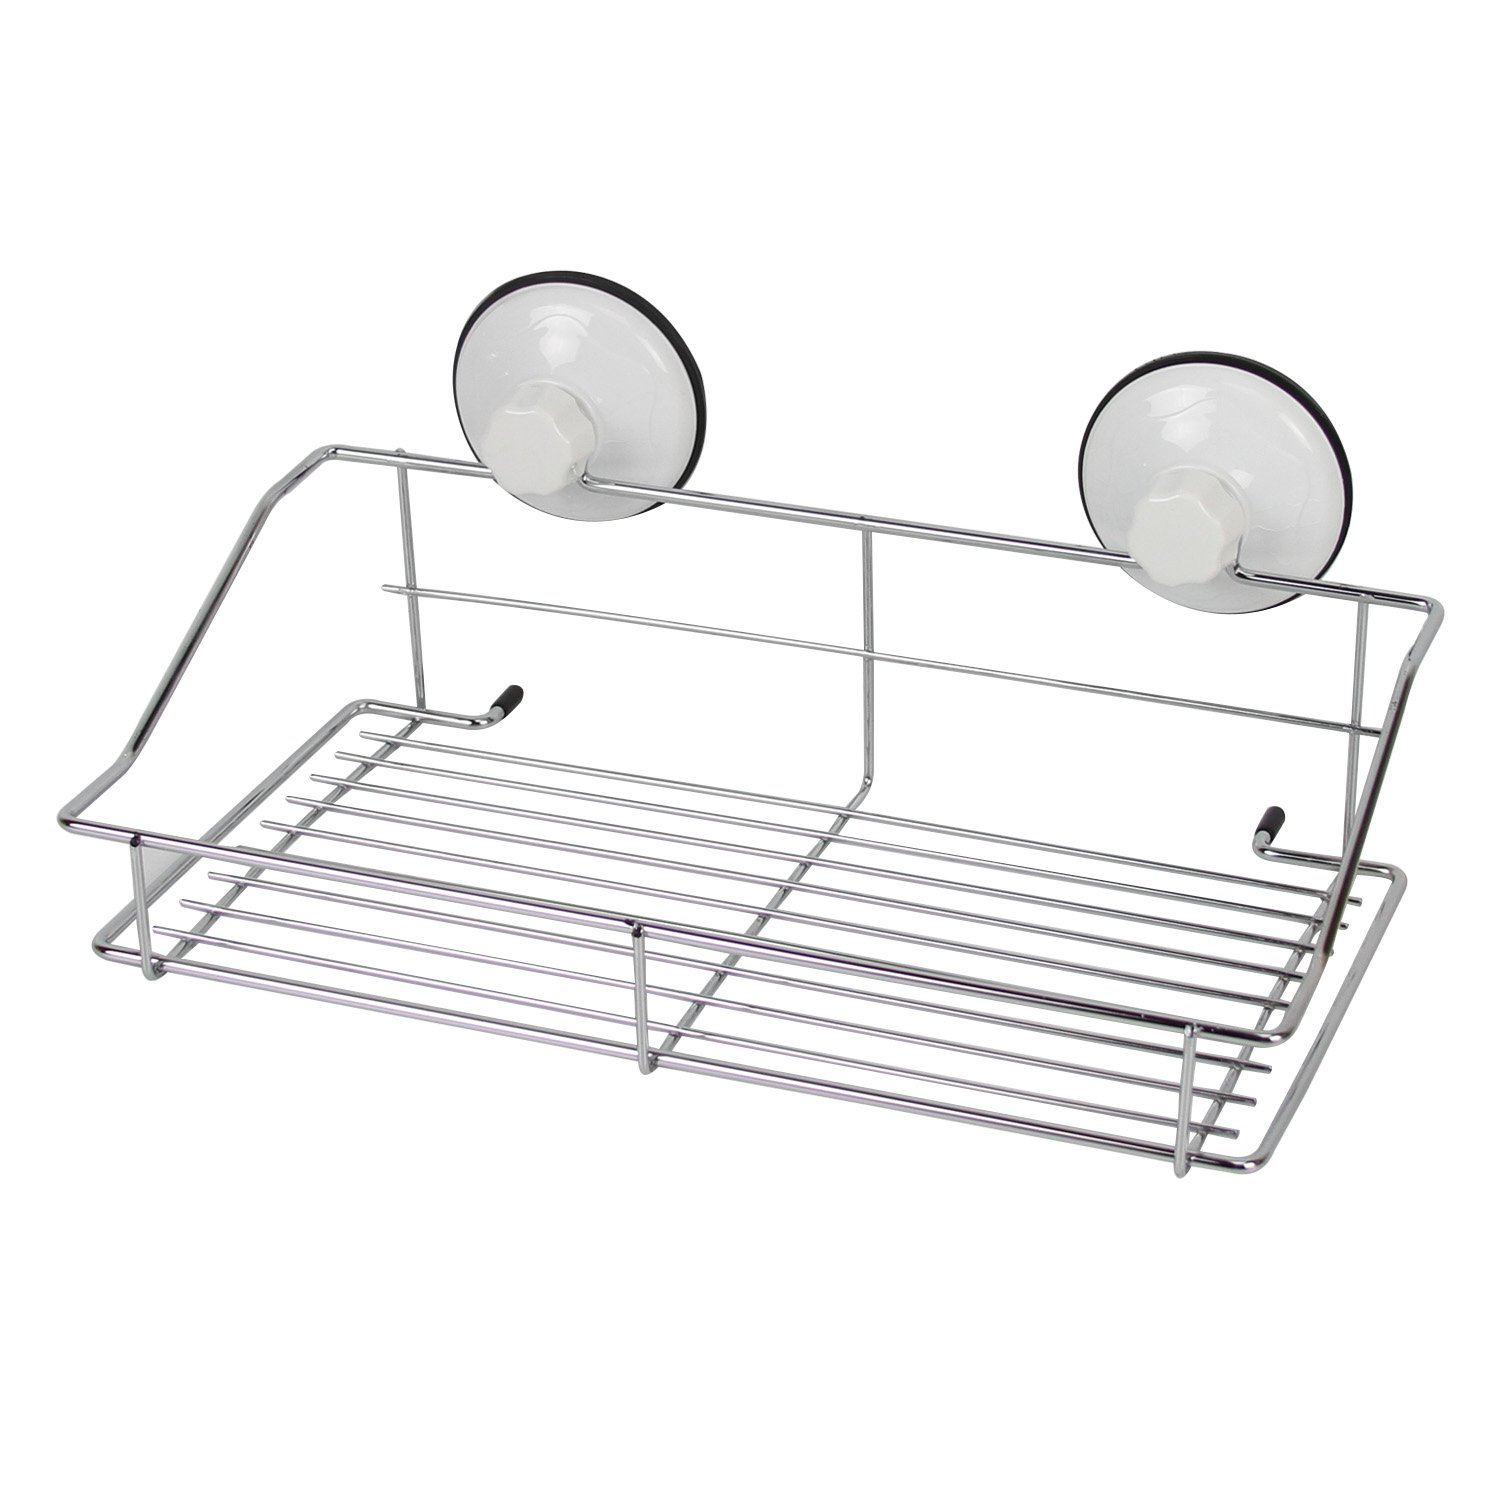 Evelyne GMT-10071 Stainless Steel Shower Soap Dish Wire Rack with Suction Cups Organizer Storage for Kitchen Bathroom